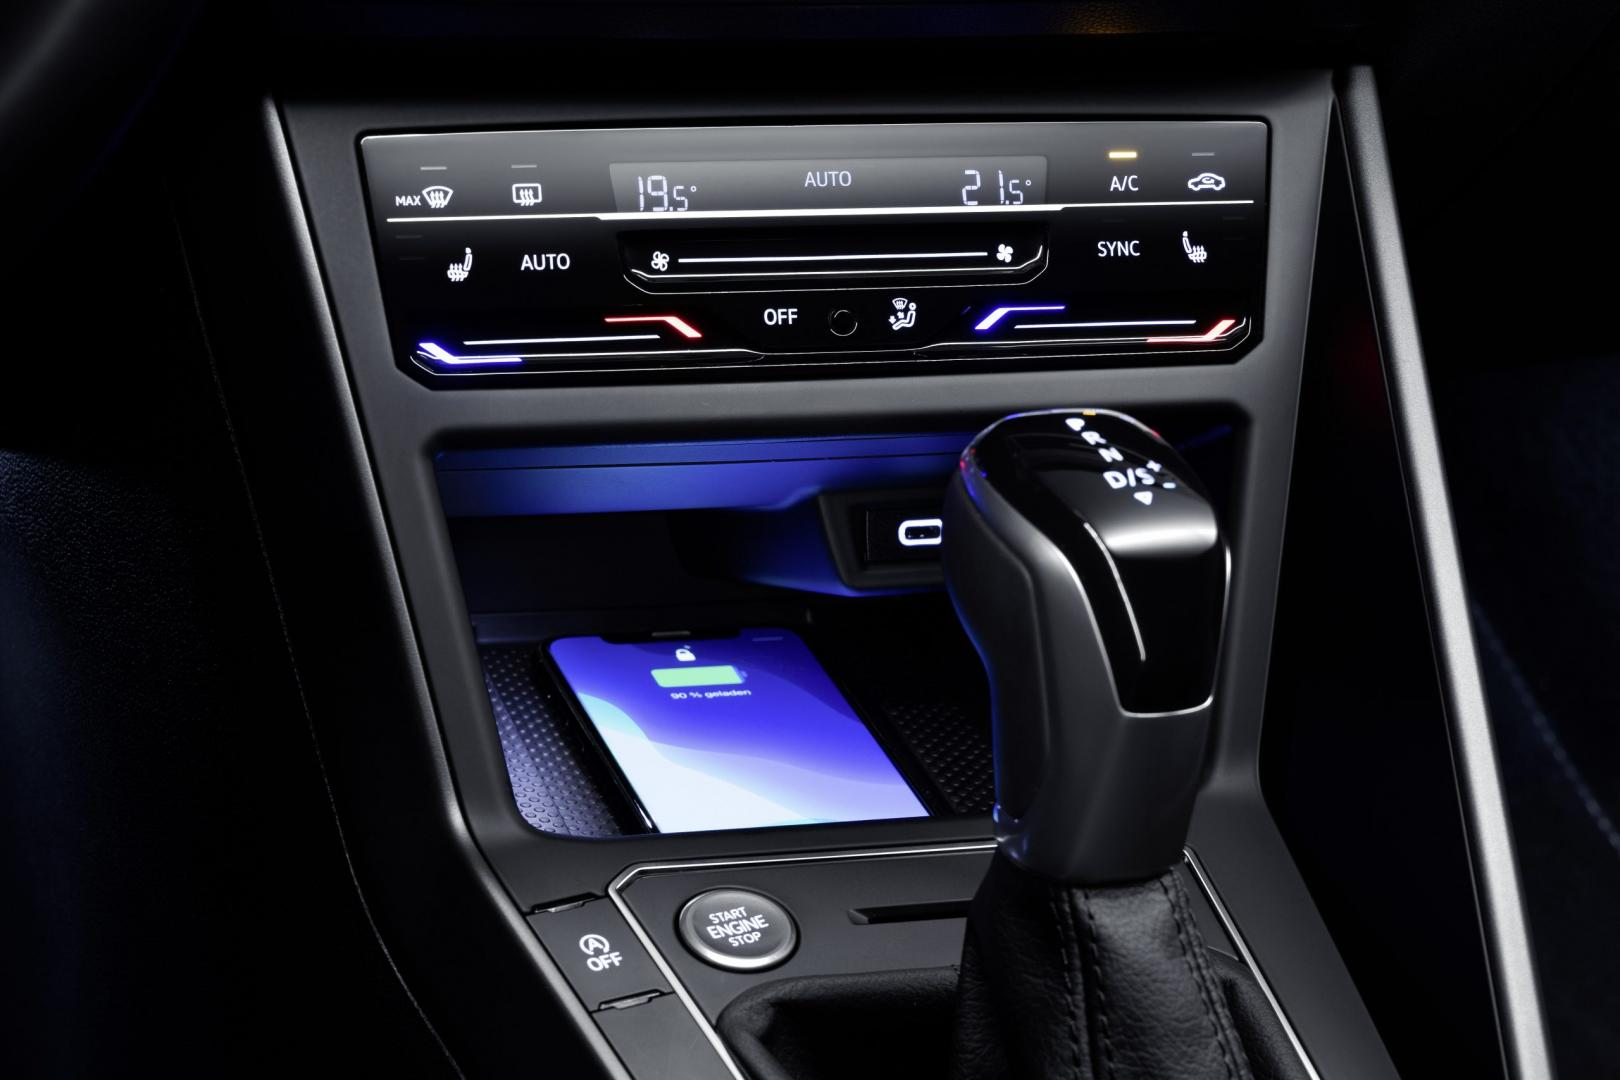 Middenconsole Volkswagen Polo facelift 2021